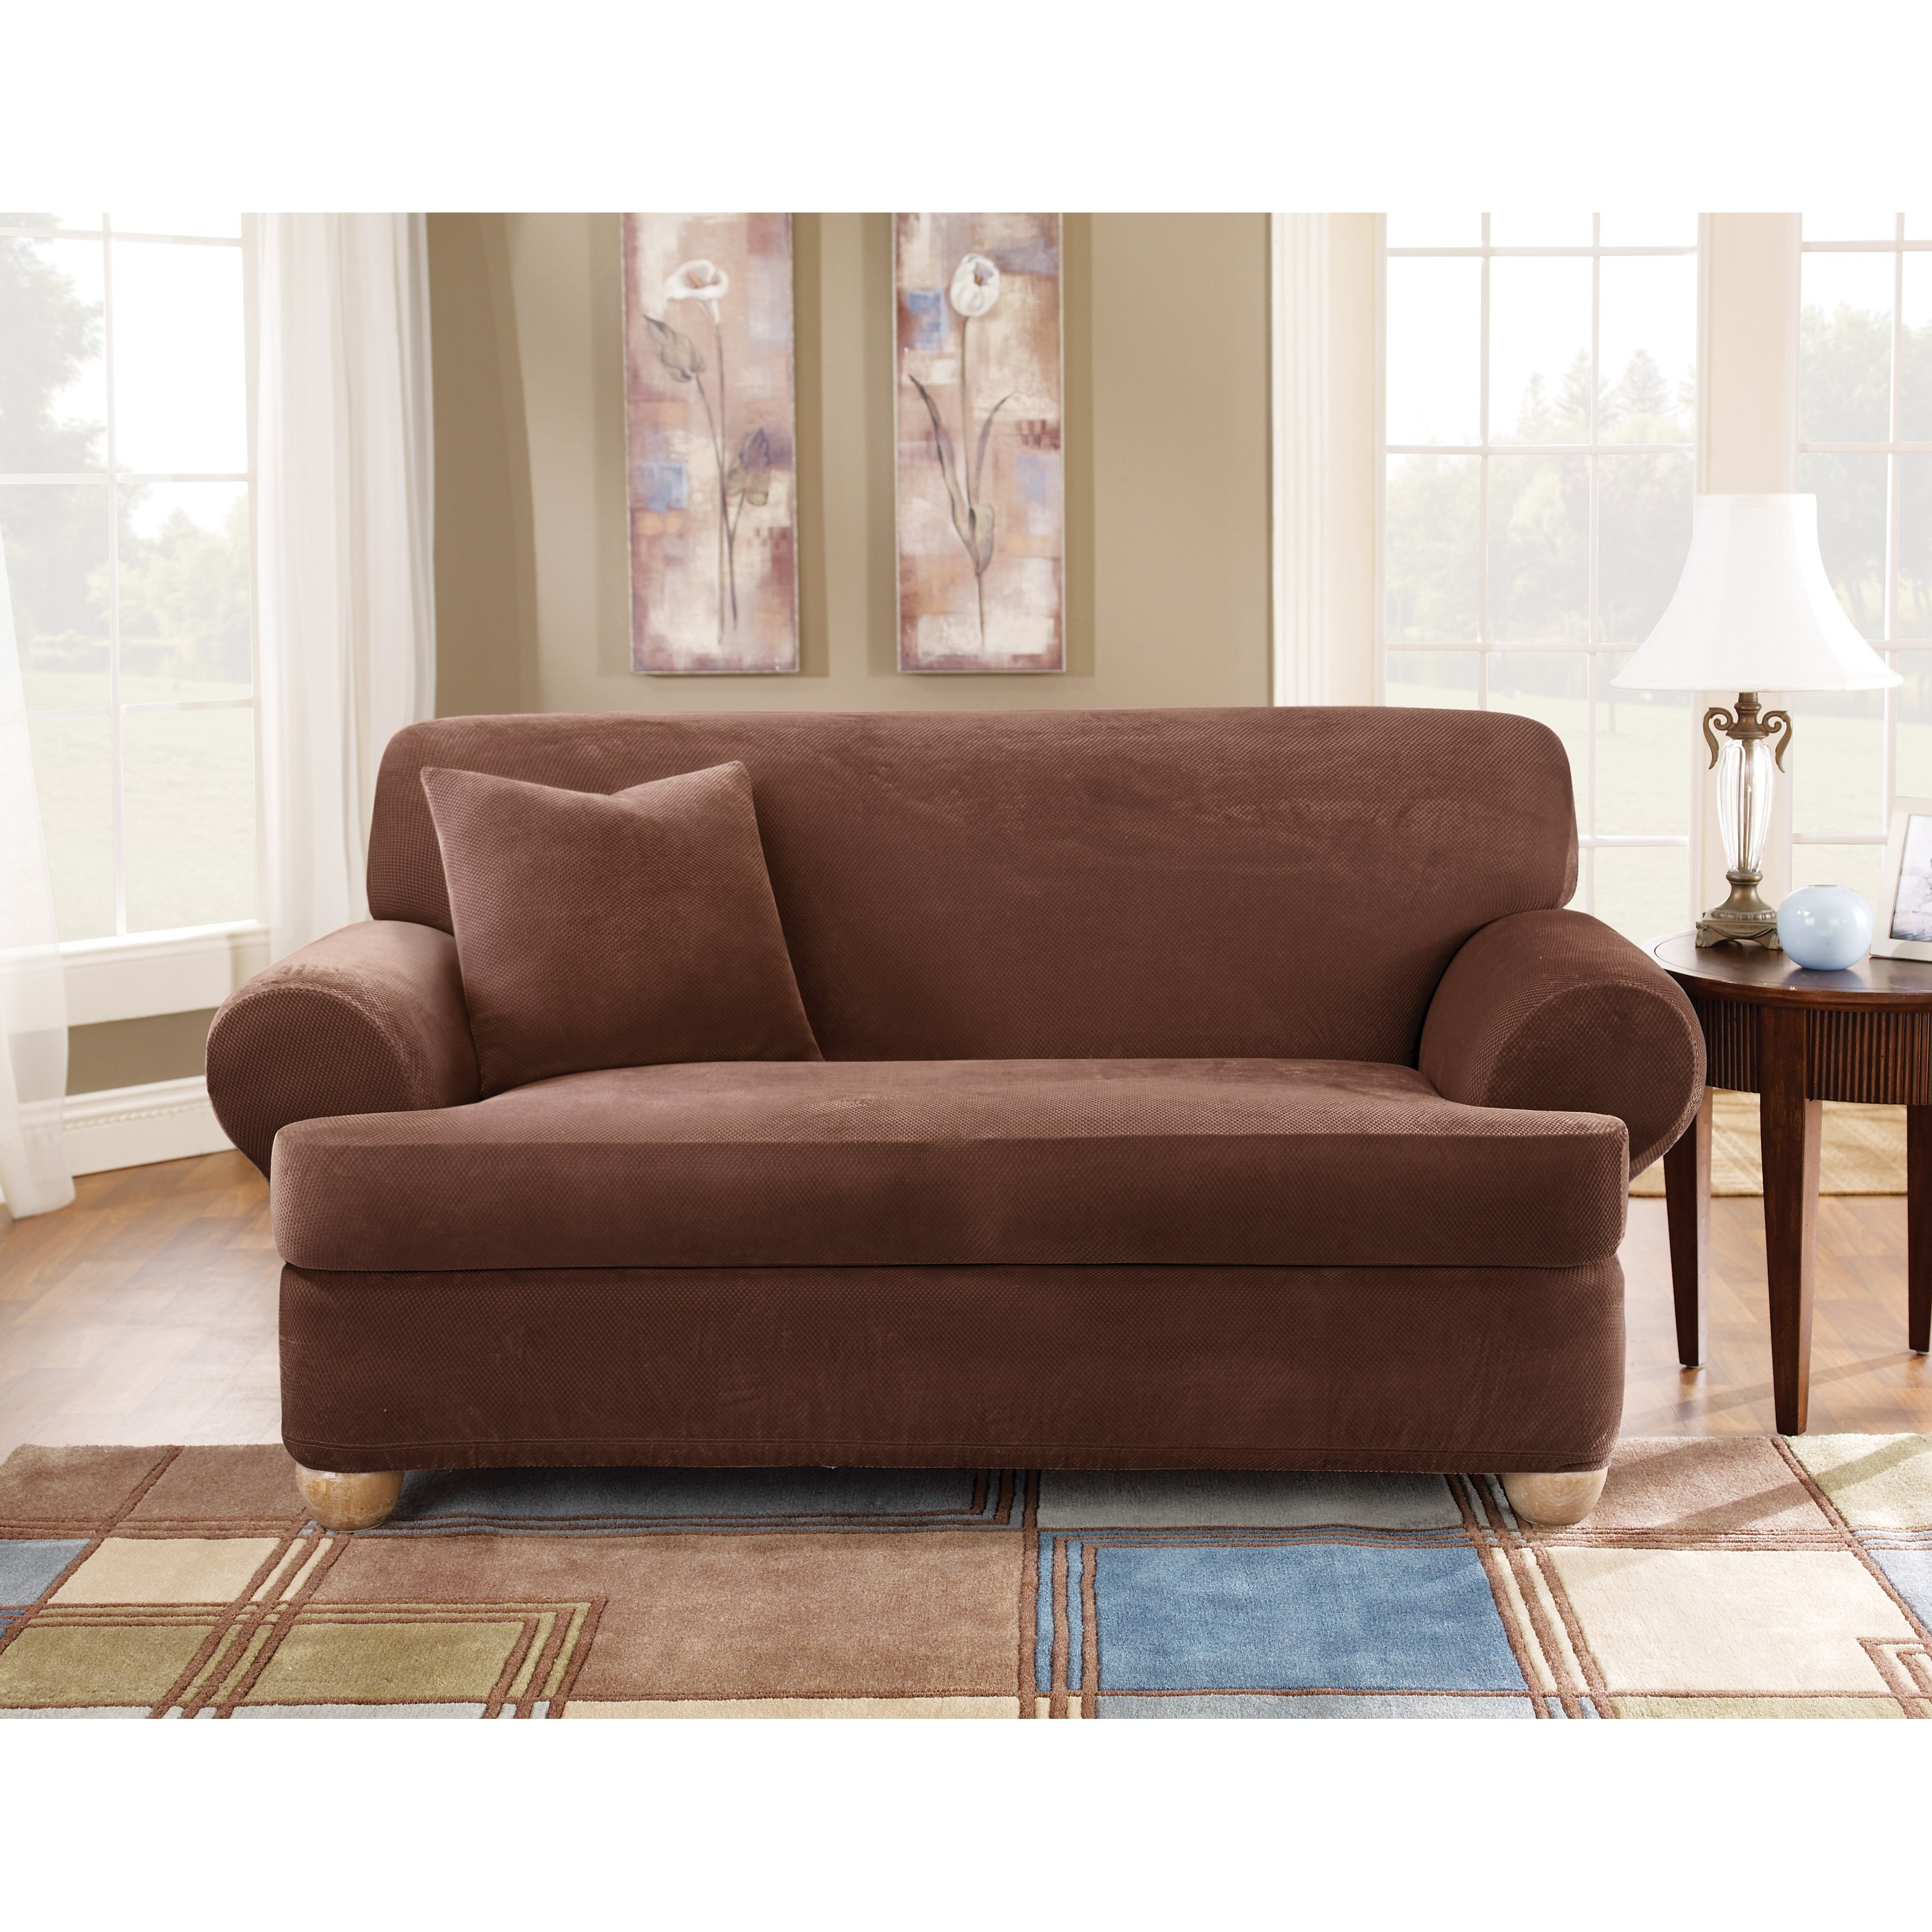 Fancy Sofas For Recent Fancy Leather Sofa Covers For Your Tips Slipcover For Leather Sofa (View 8 of 20)